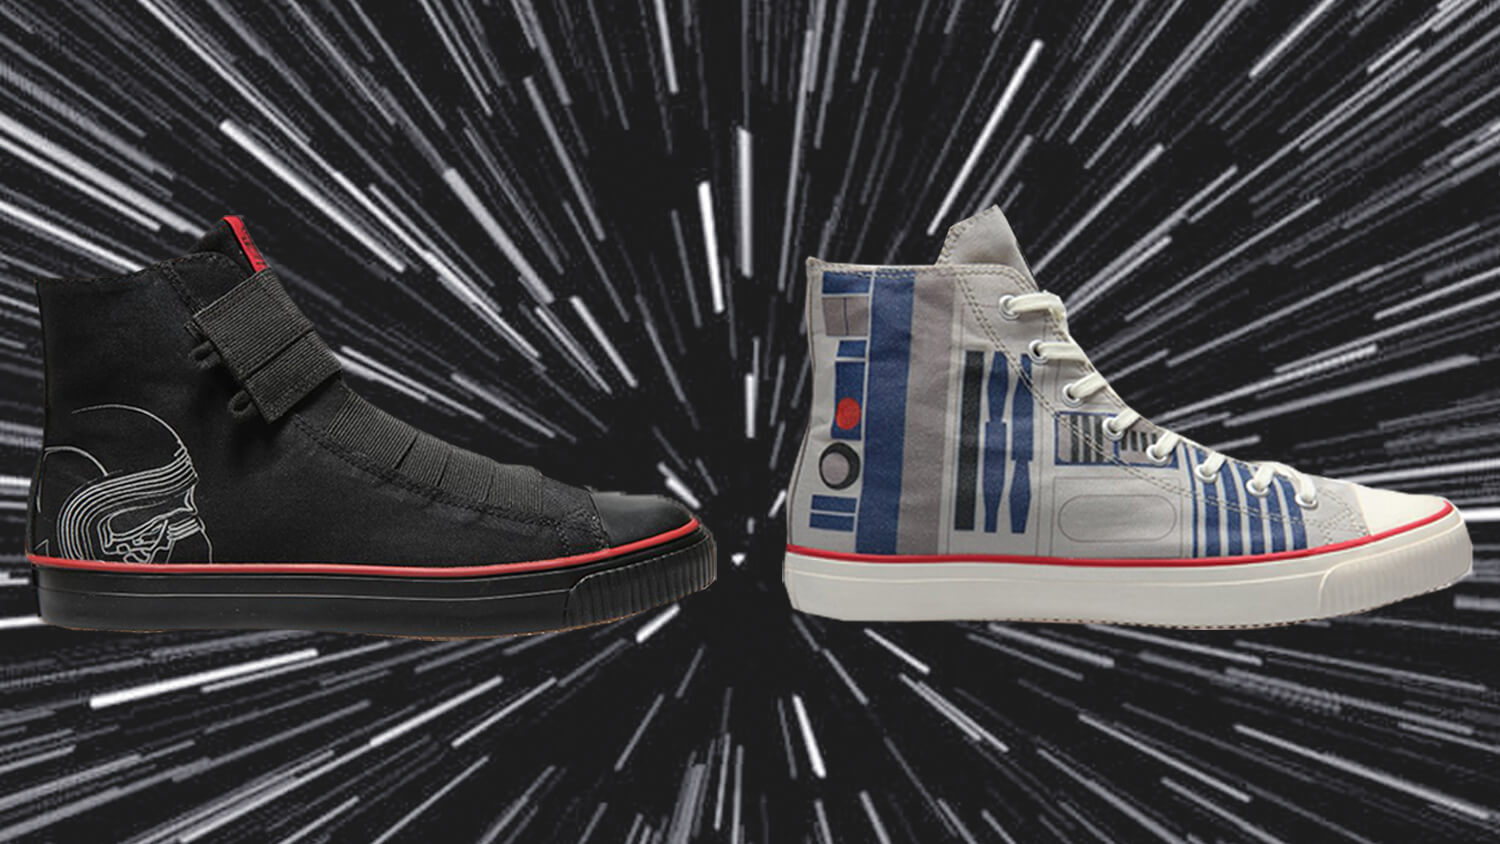 THESE VEGAN STAR WARS SHOES ARE MADE FROM COCONUTS